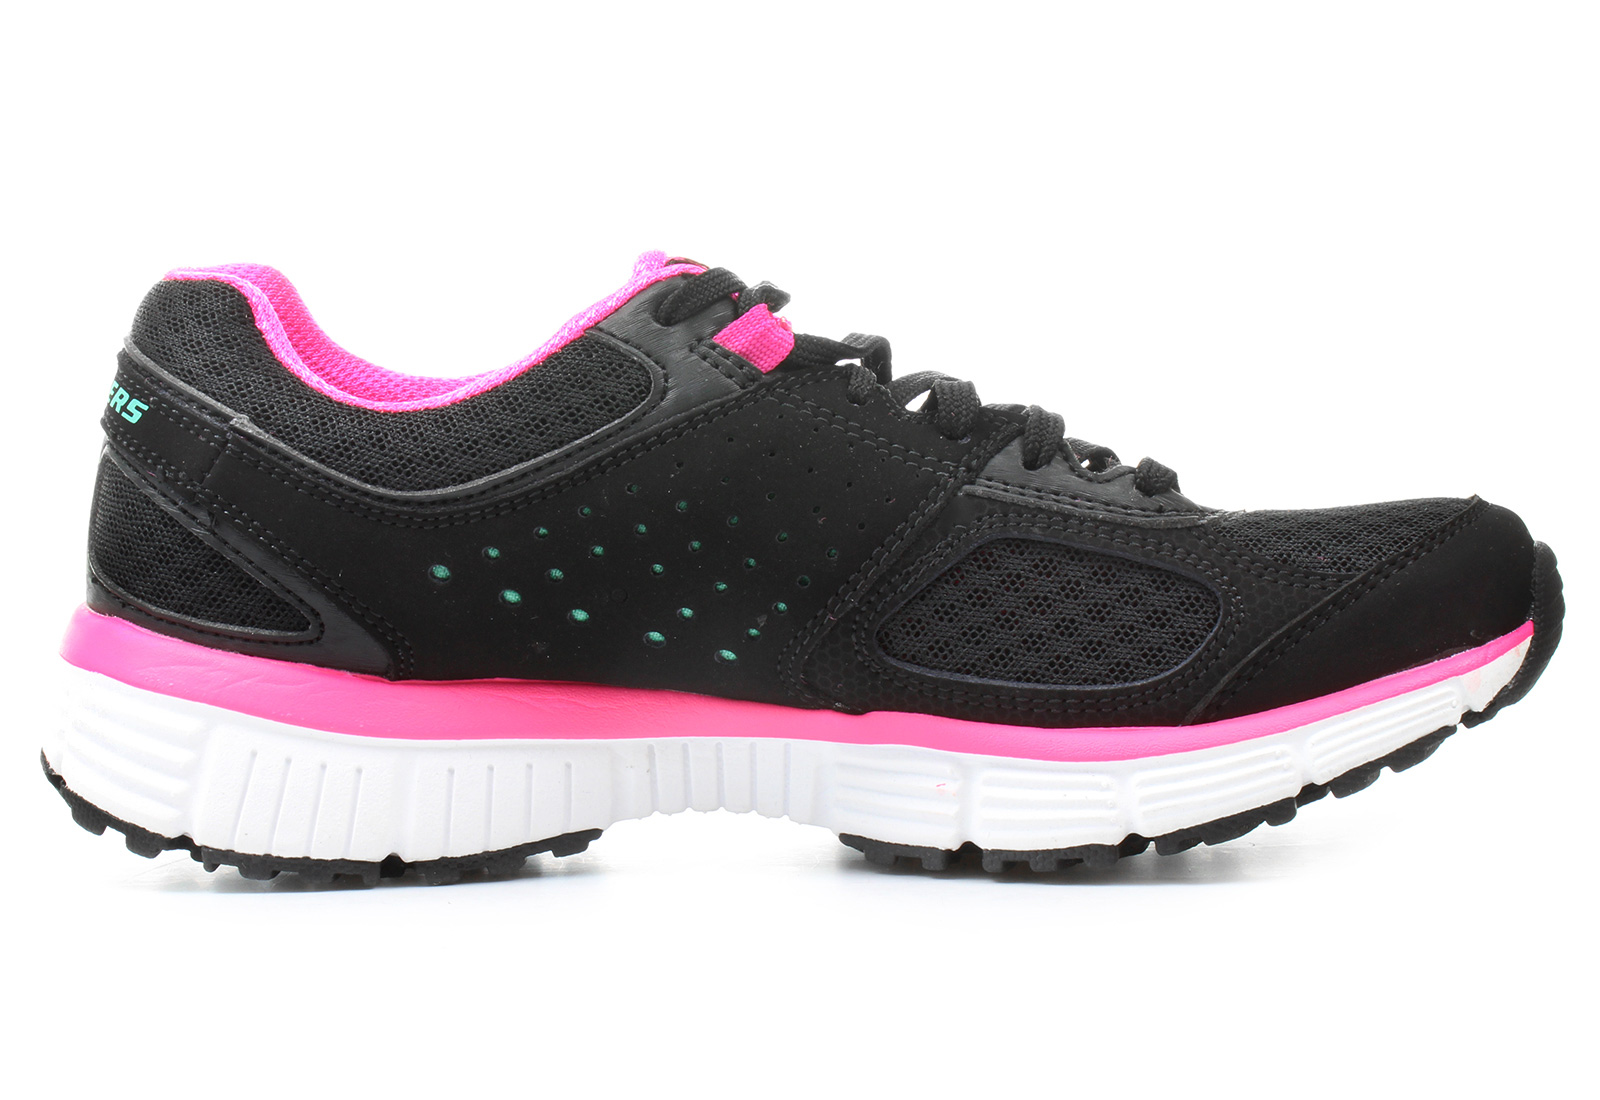 reputable site 2ee92 761eb Skechers Agility Perfect Fit Damen Sneakers 11903 Schuhe ...